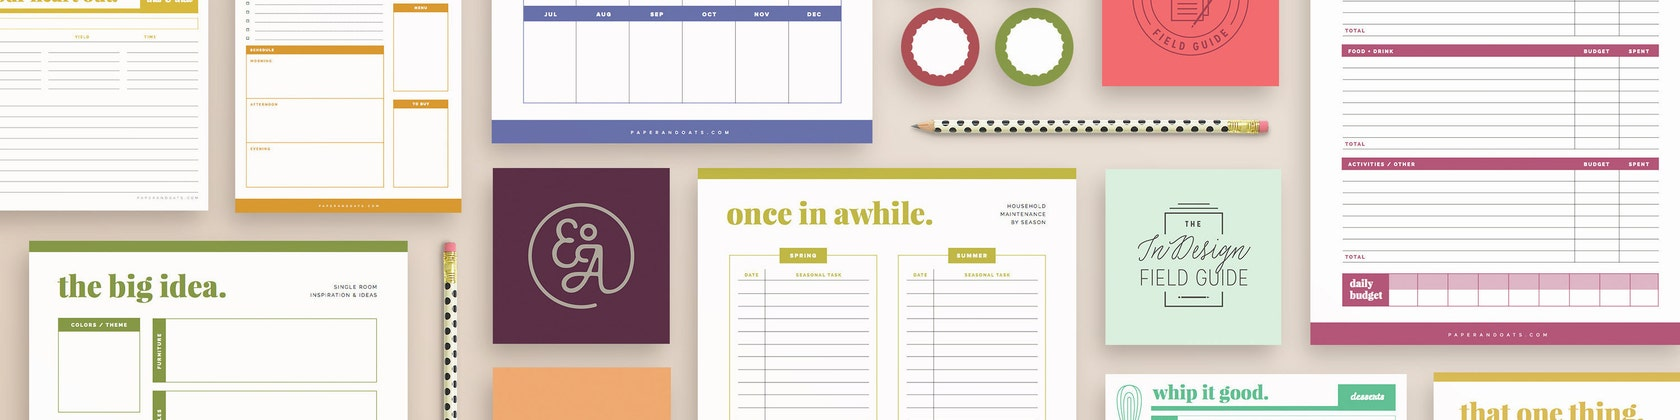 Printable planners organizers for home business by paperandoats paperandoats fandeluxe